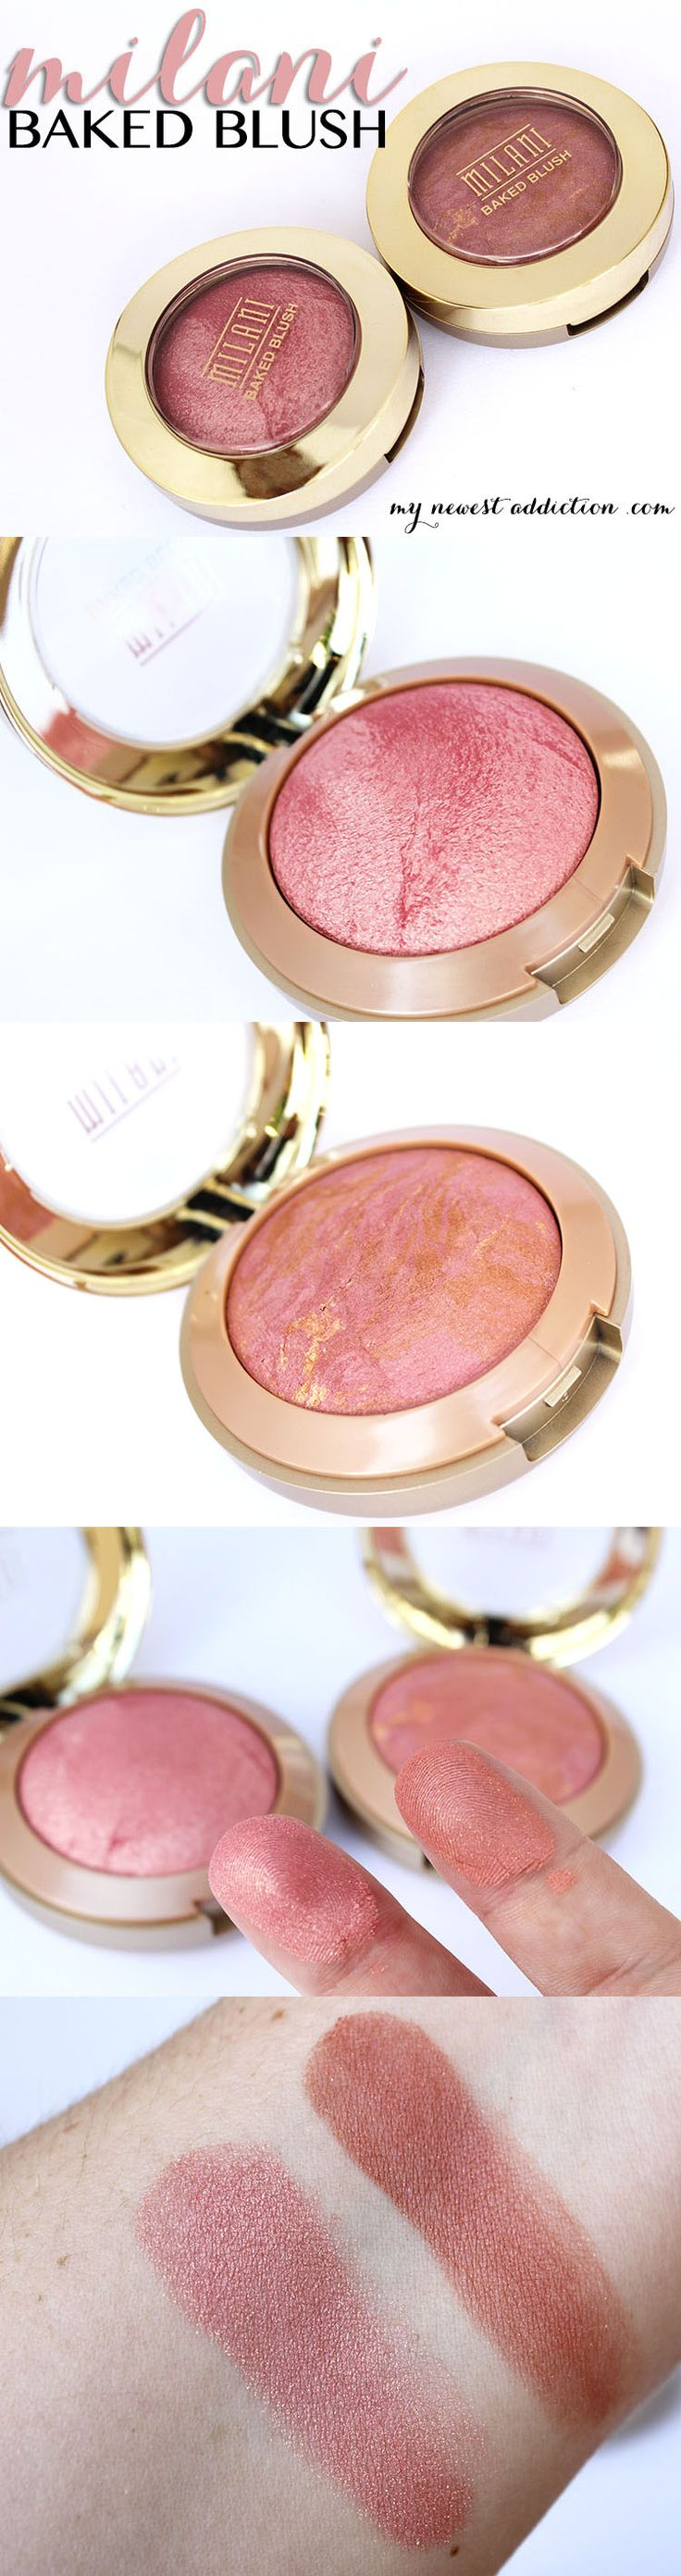 Milani Baked Blush in Dolce Pink and Berry Amore via www.mynewestaddiction.com